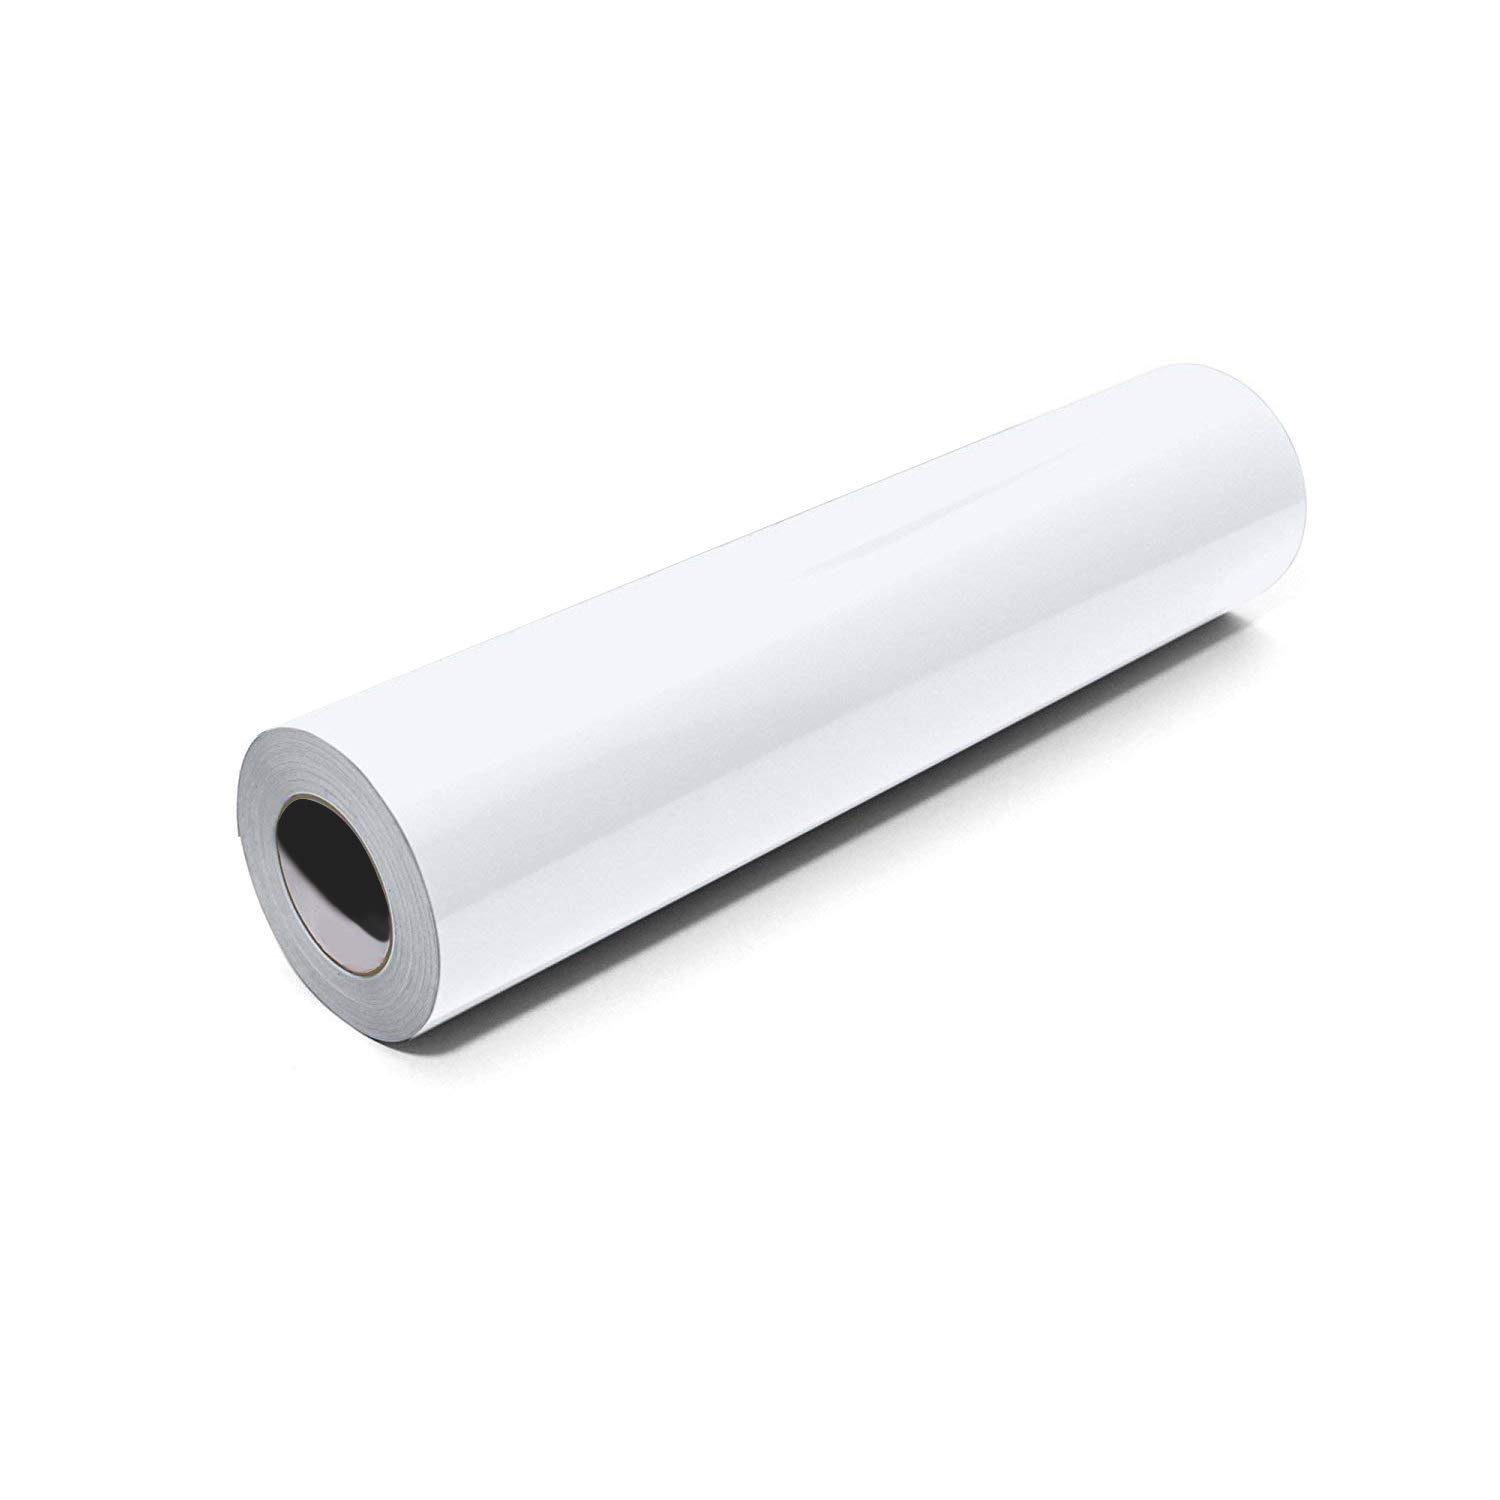 Craft Adhesive Vinyl Color 24in x 50 Yards White Color 24in x 50yd Craft Adhesive Vinyl